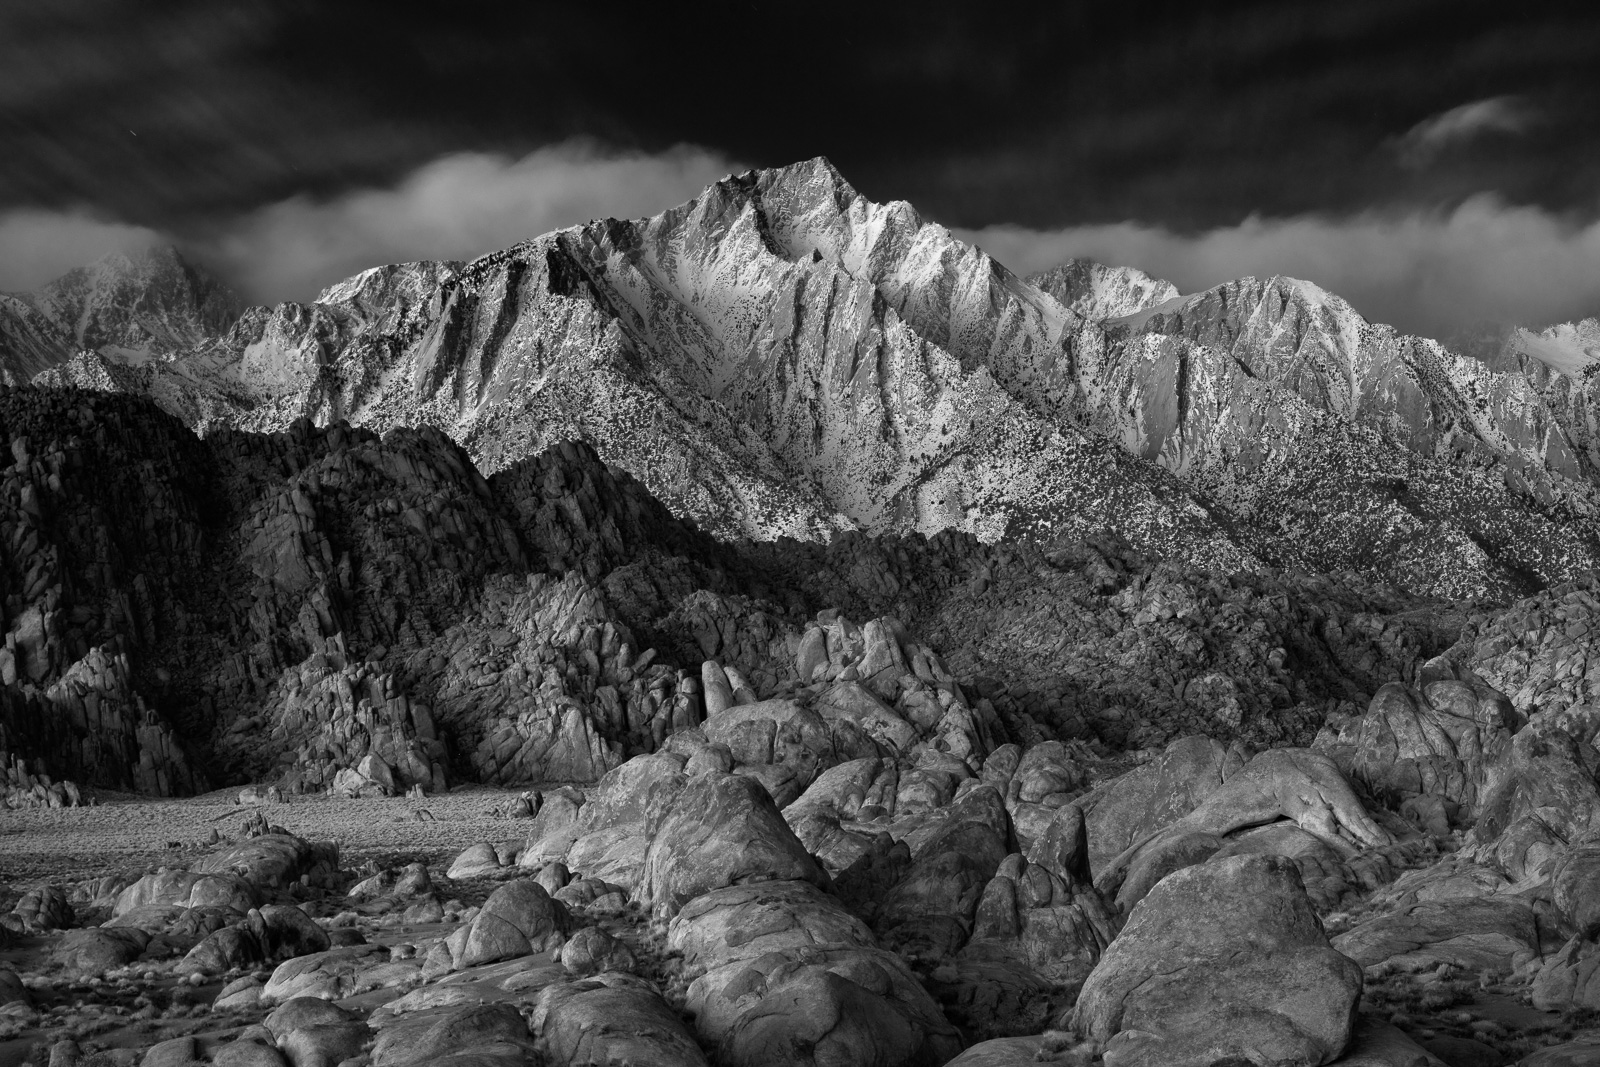 Lone Pine Peak and the Alabama Hills st sunrise, Owens Valley, California.